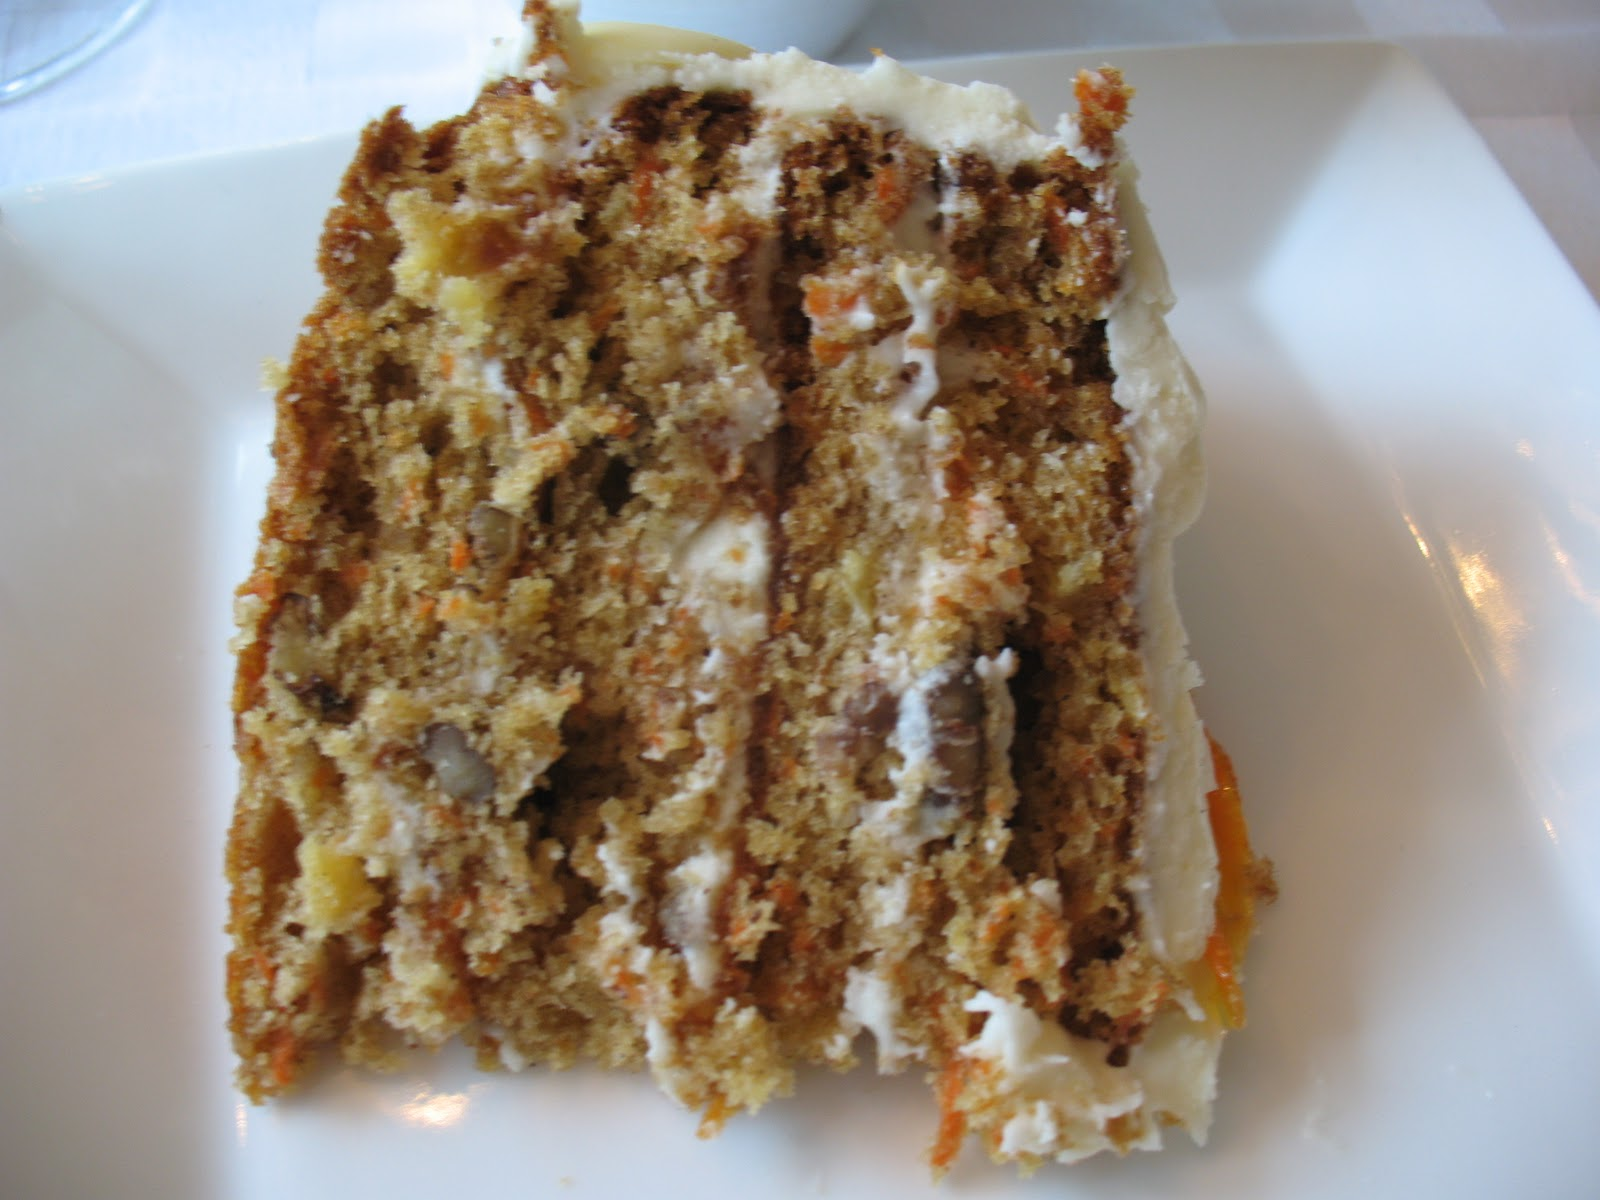 Best Cake Recipes For Icing: Anna's Table: Best Carrot Cake With Cream Cheese Frosting